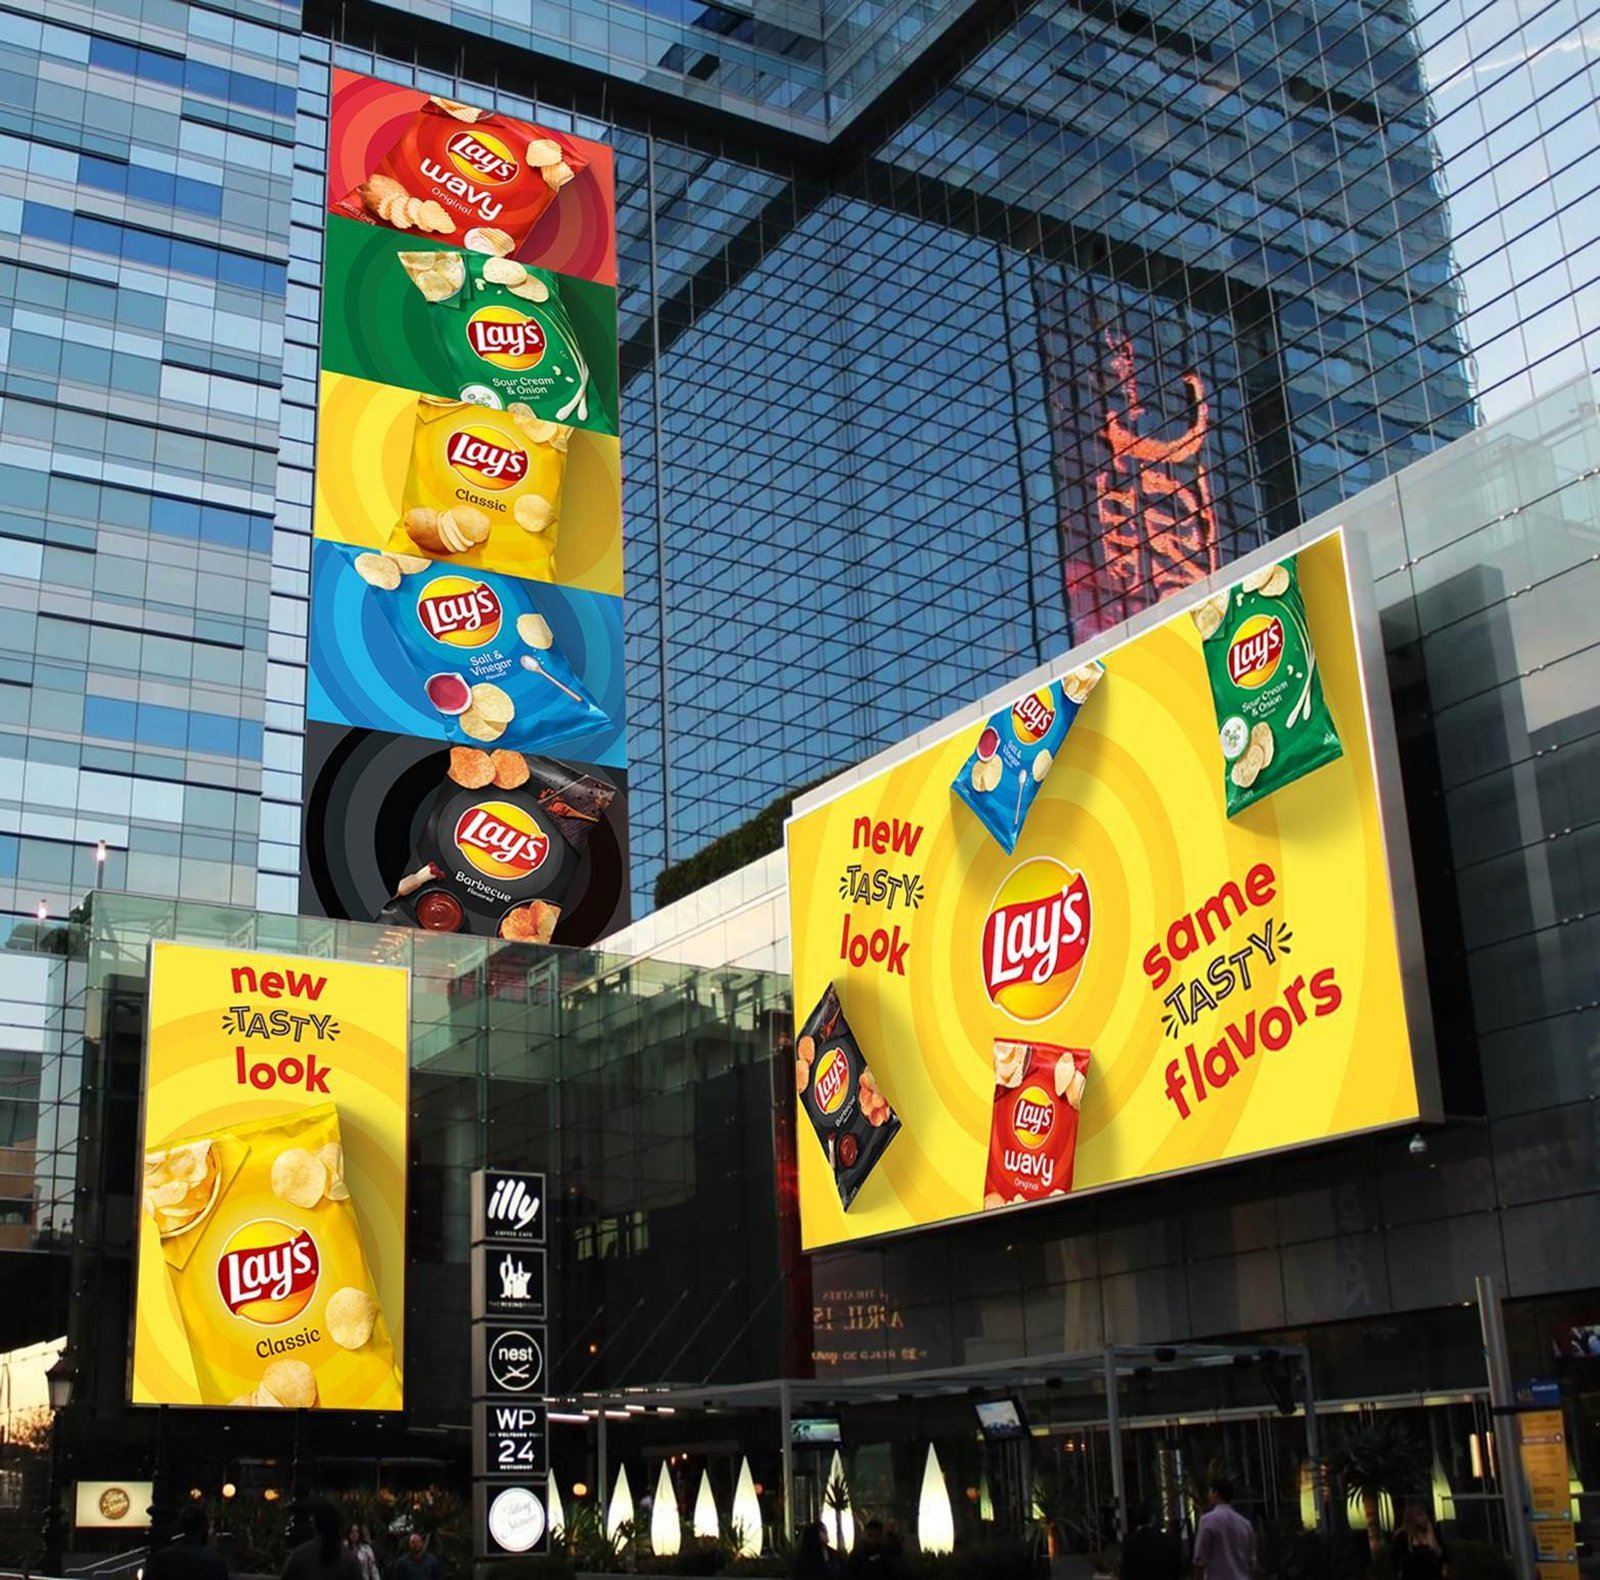 Lay's potato chip bag is getting its first new look in 12 years